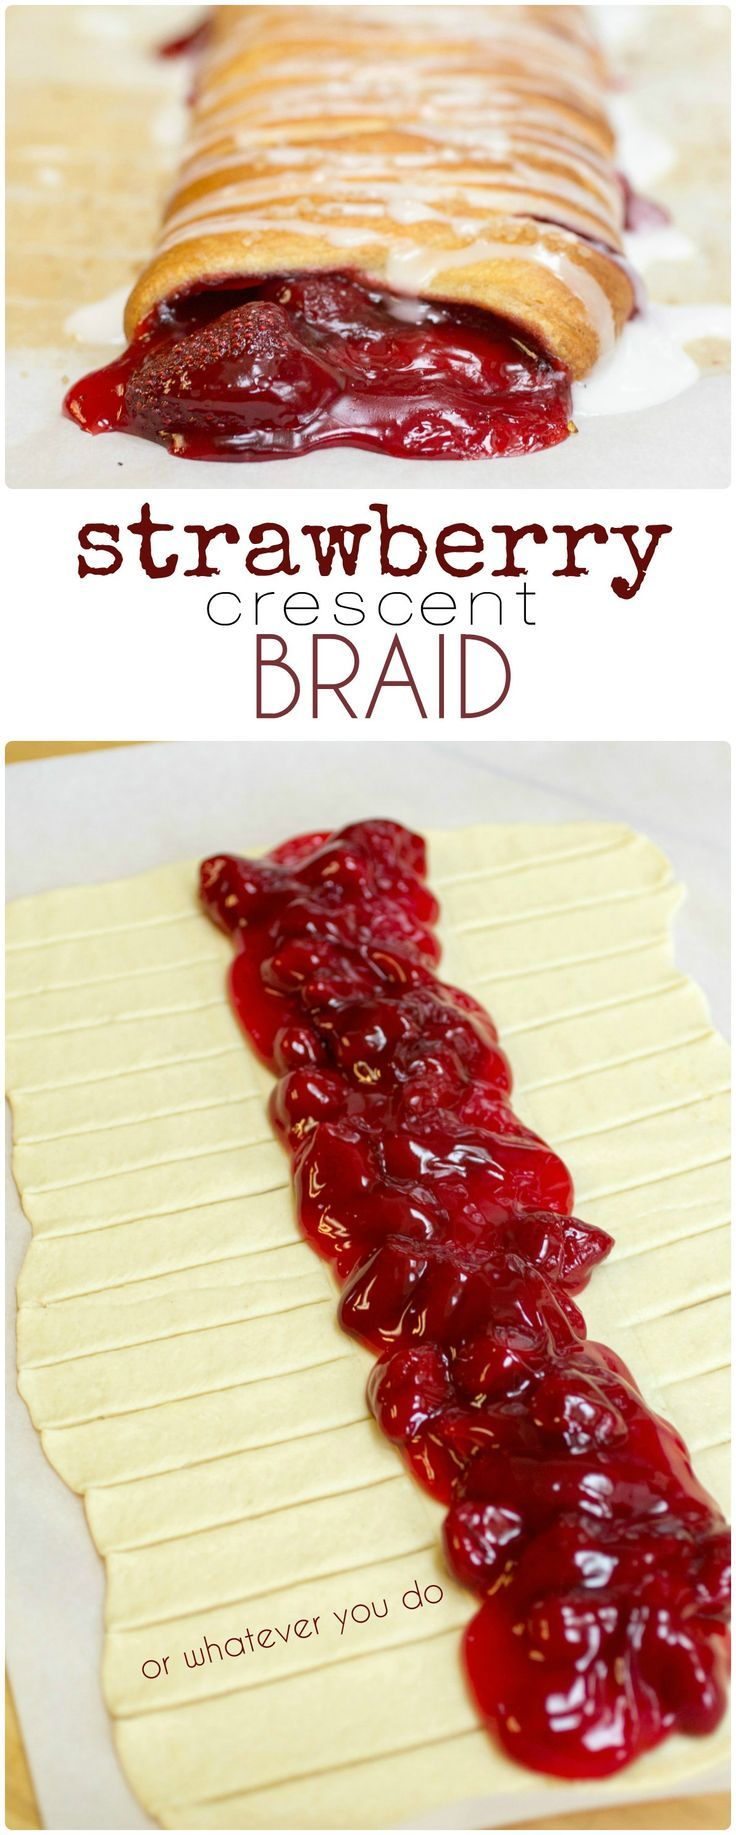 strawberry crescent braid crescent bread crescent rolls 4 ingredients ...